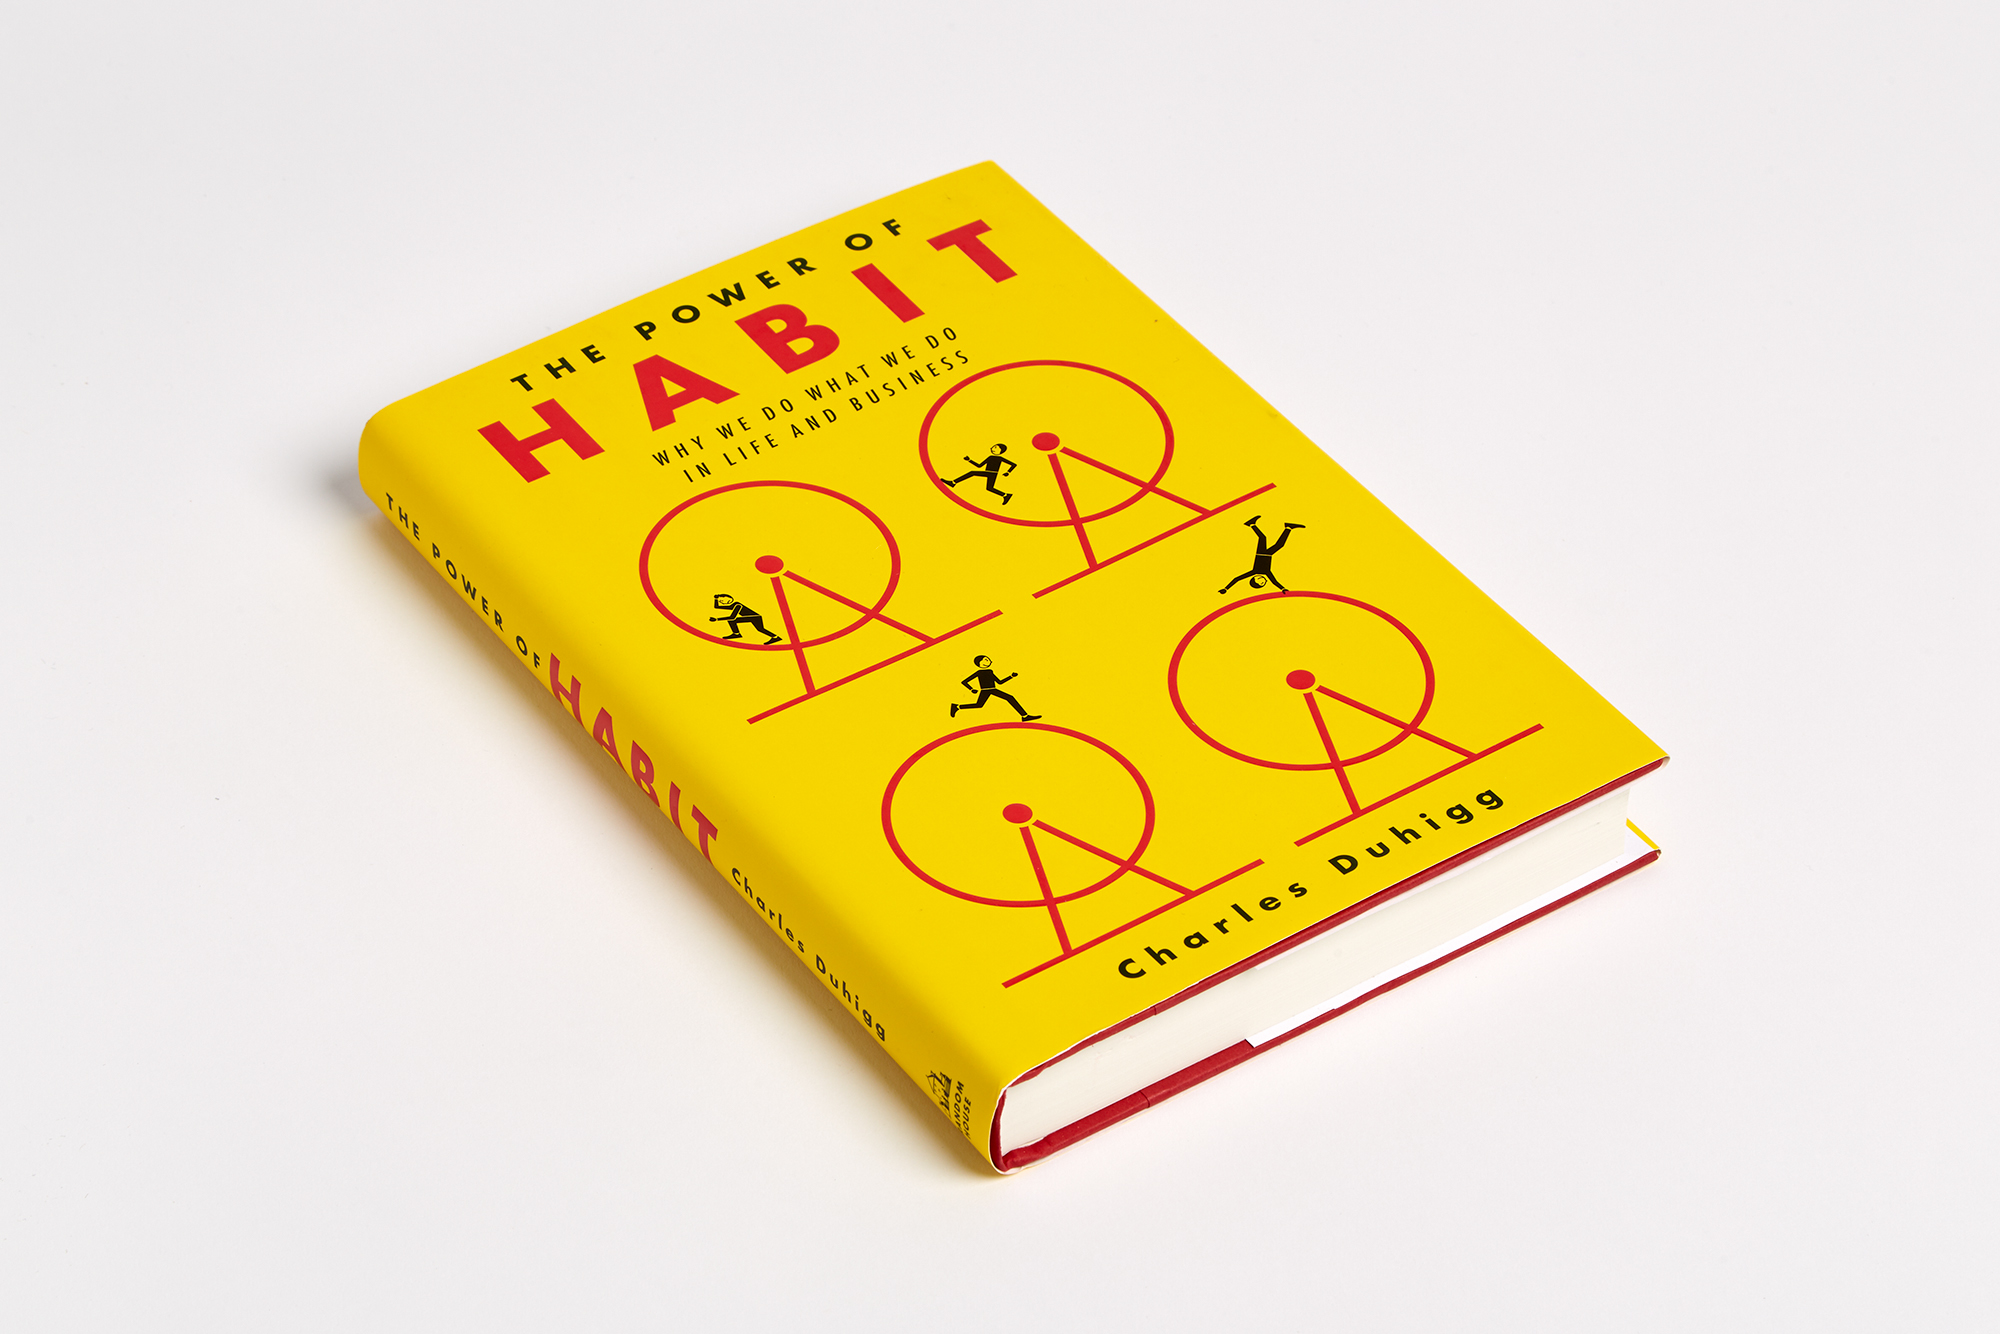 The Power of Habit - Penguin Random House Common Reads